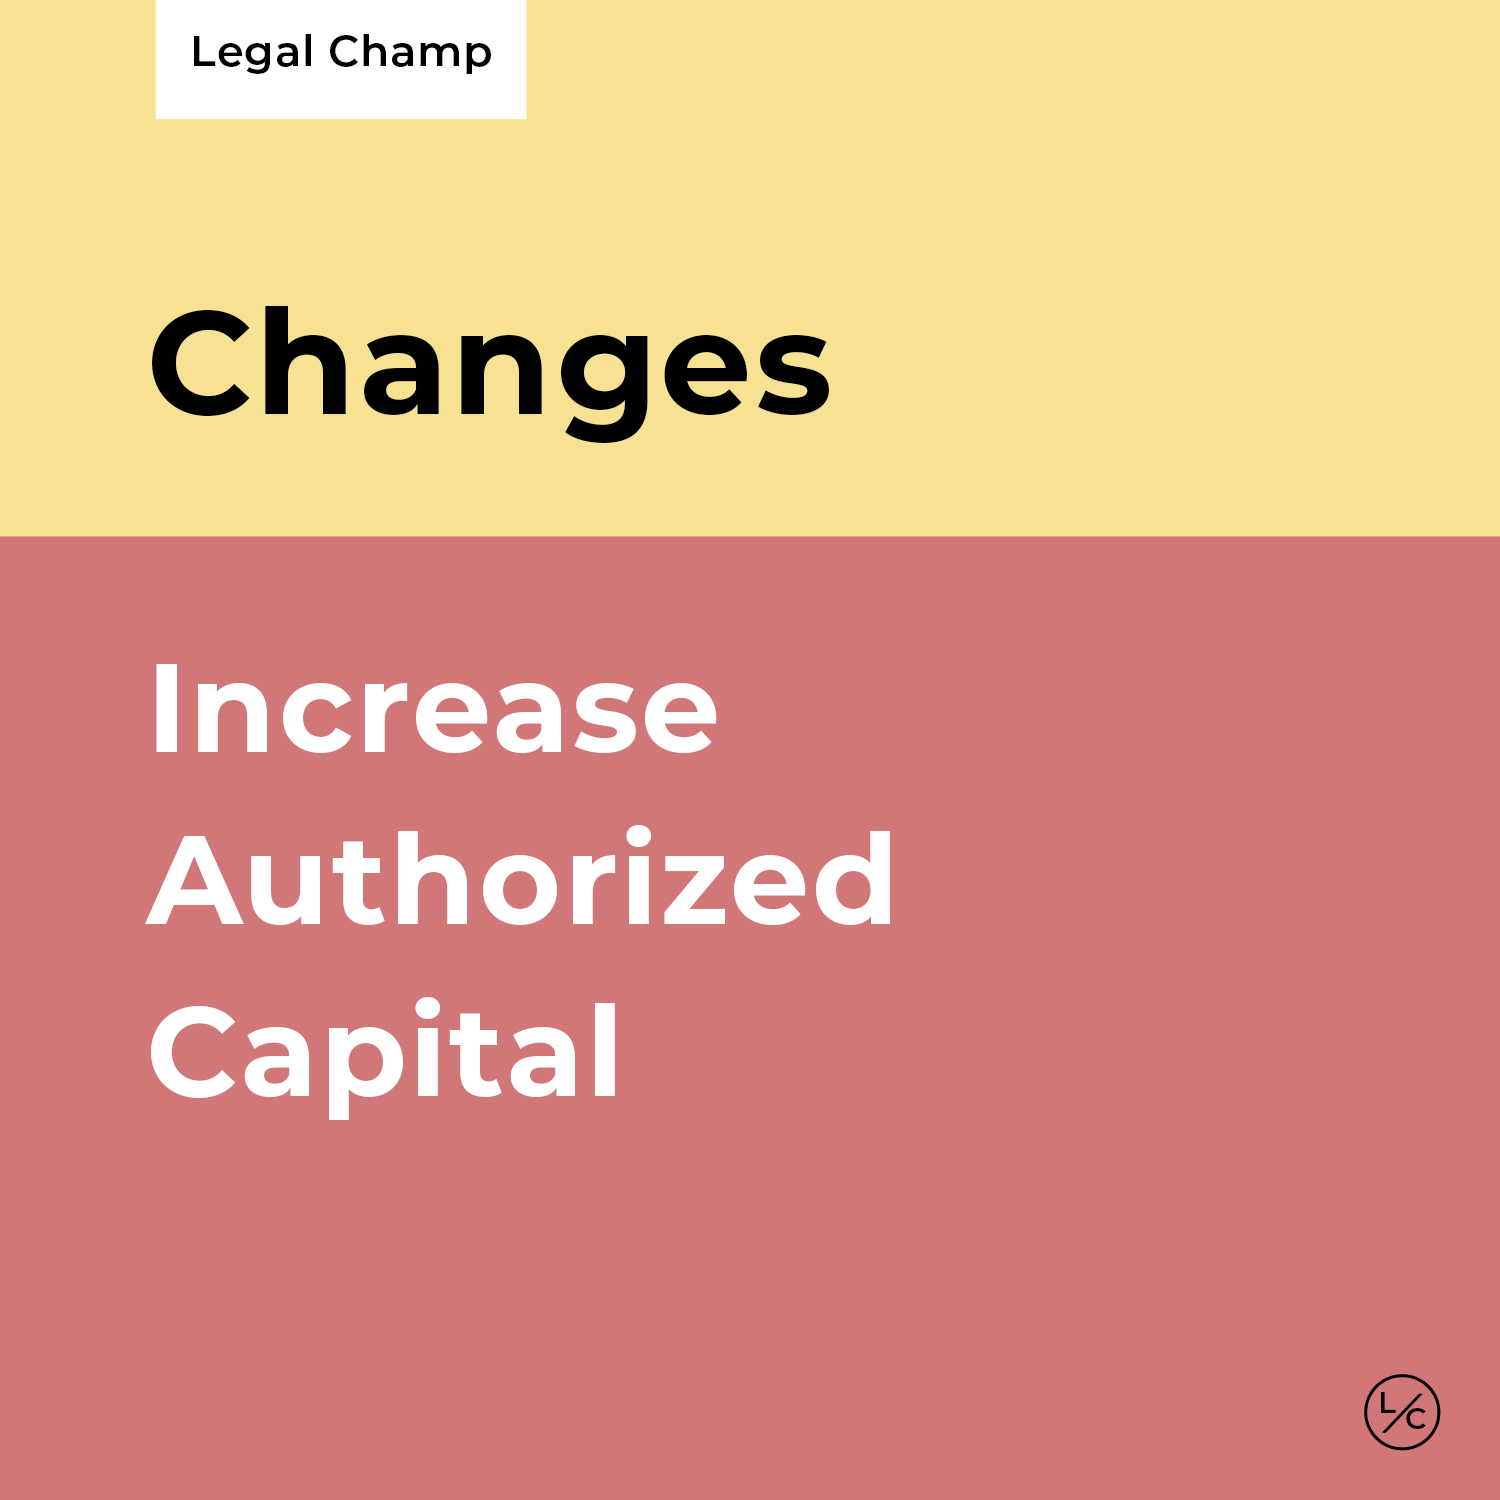 Increase Authorized Capital